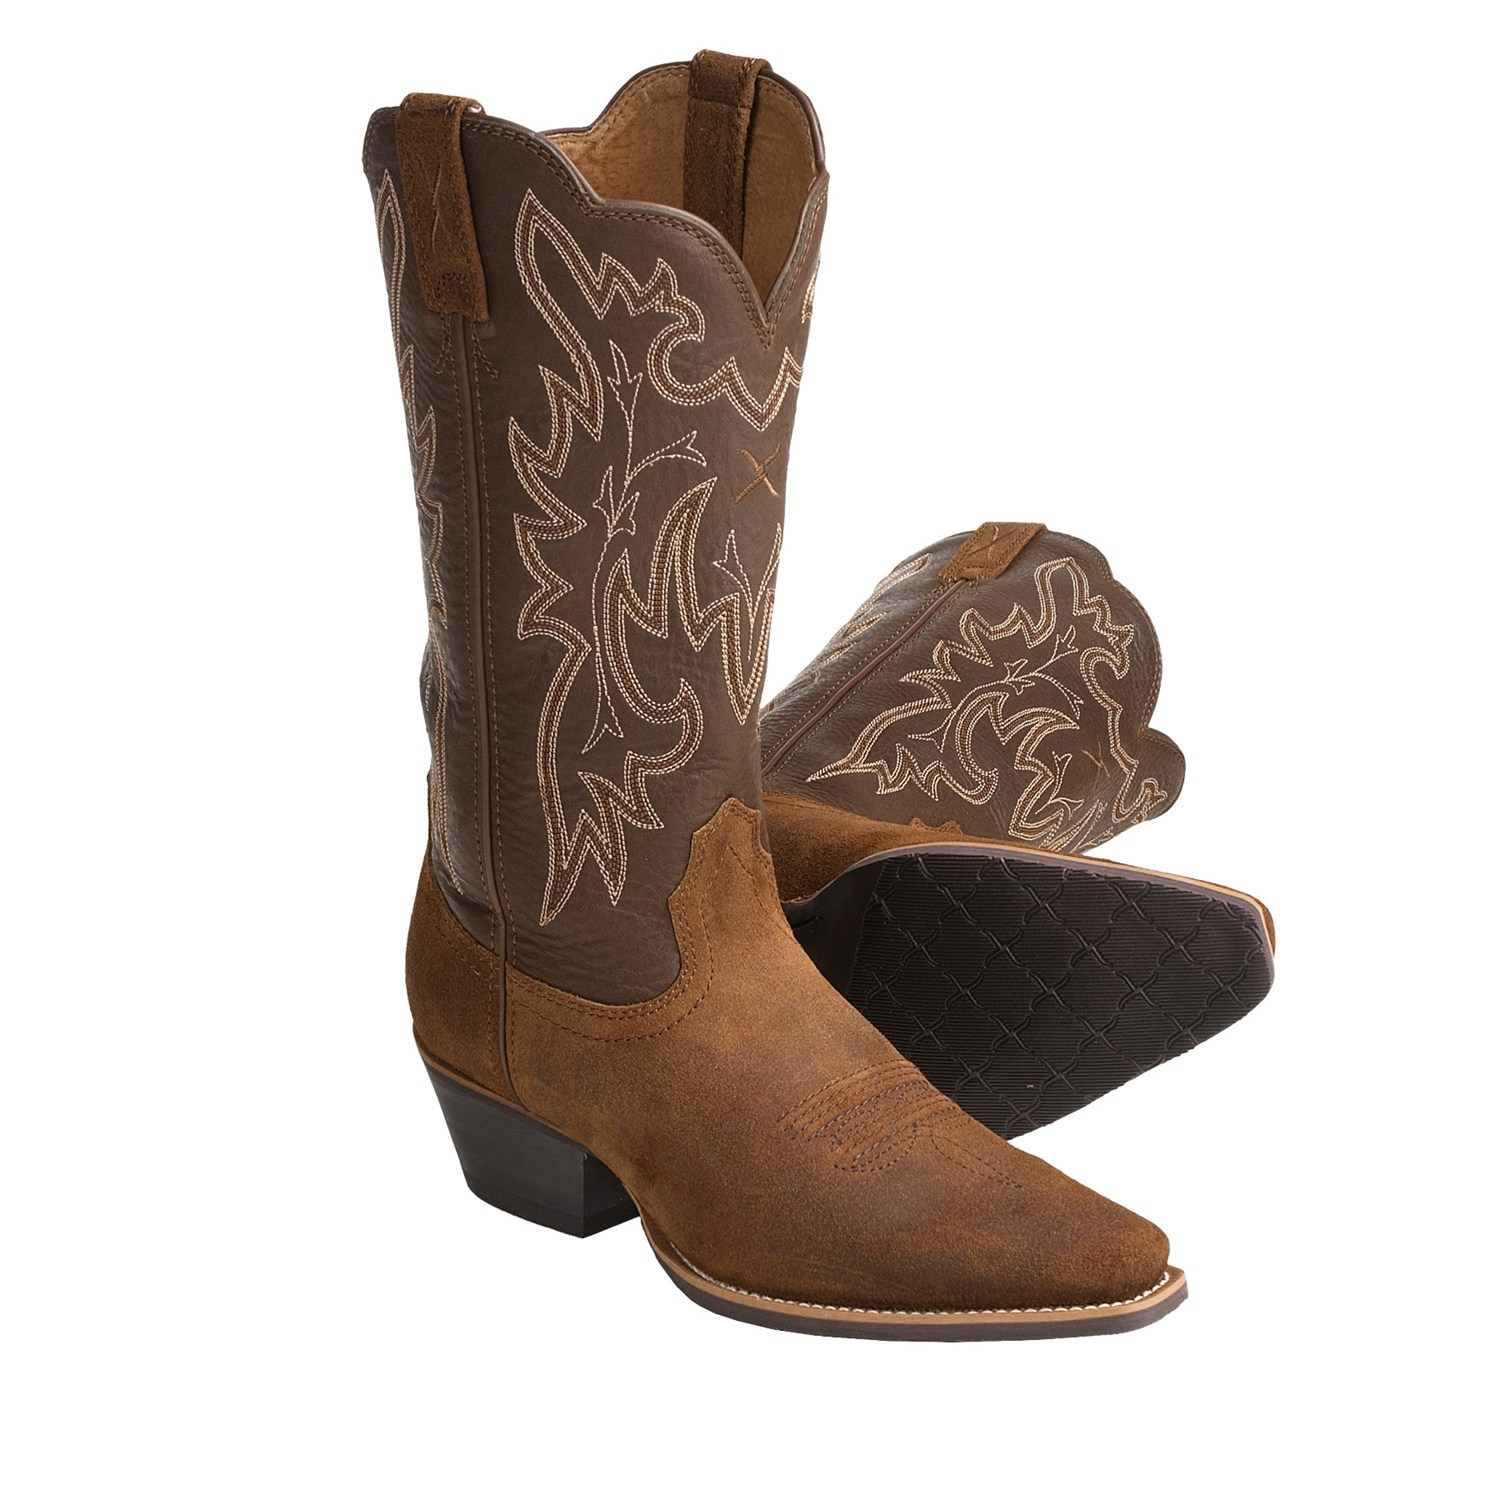 Inexpensive Cowboy Boots RzBQBGsp